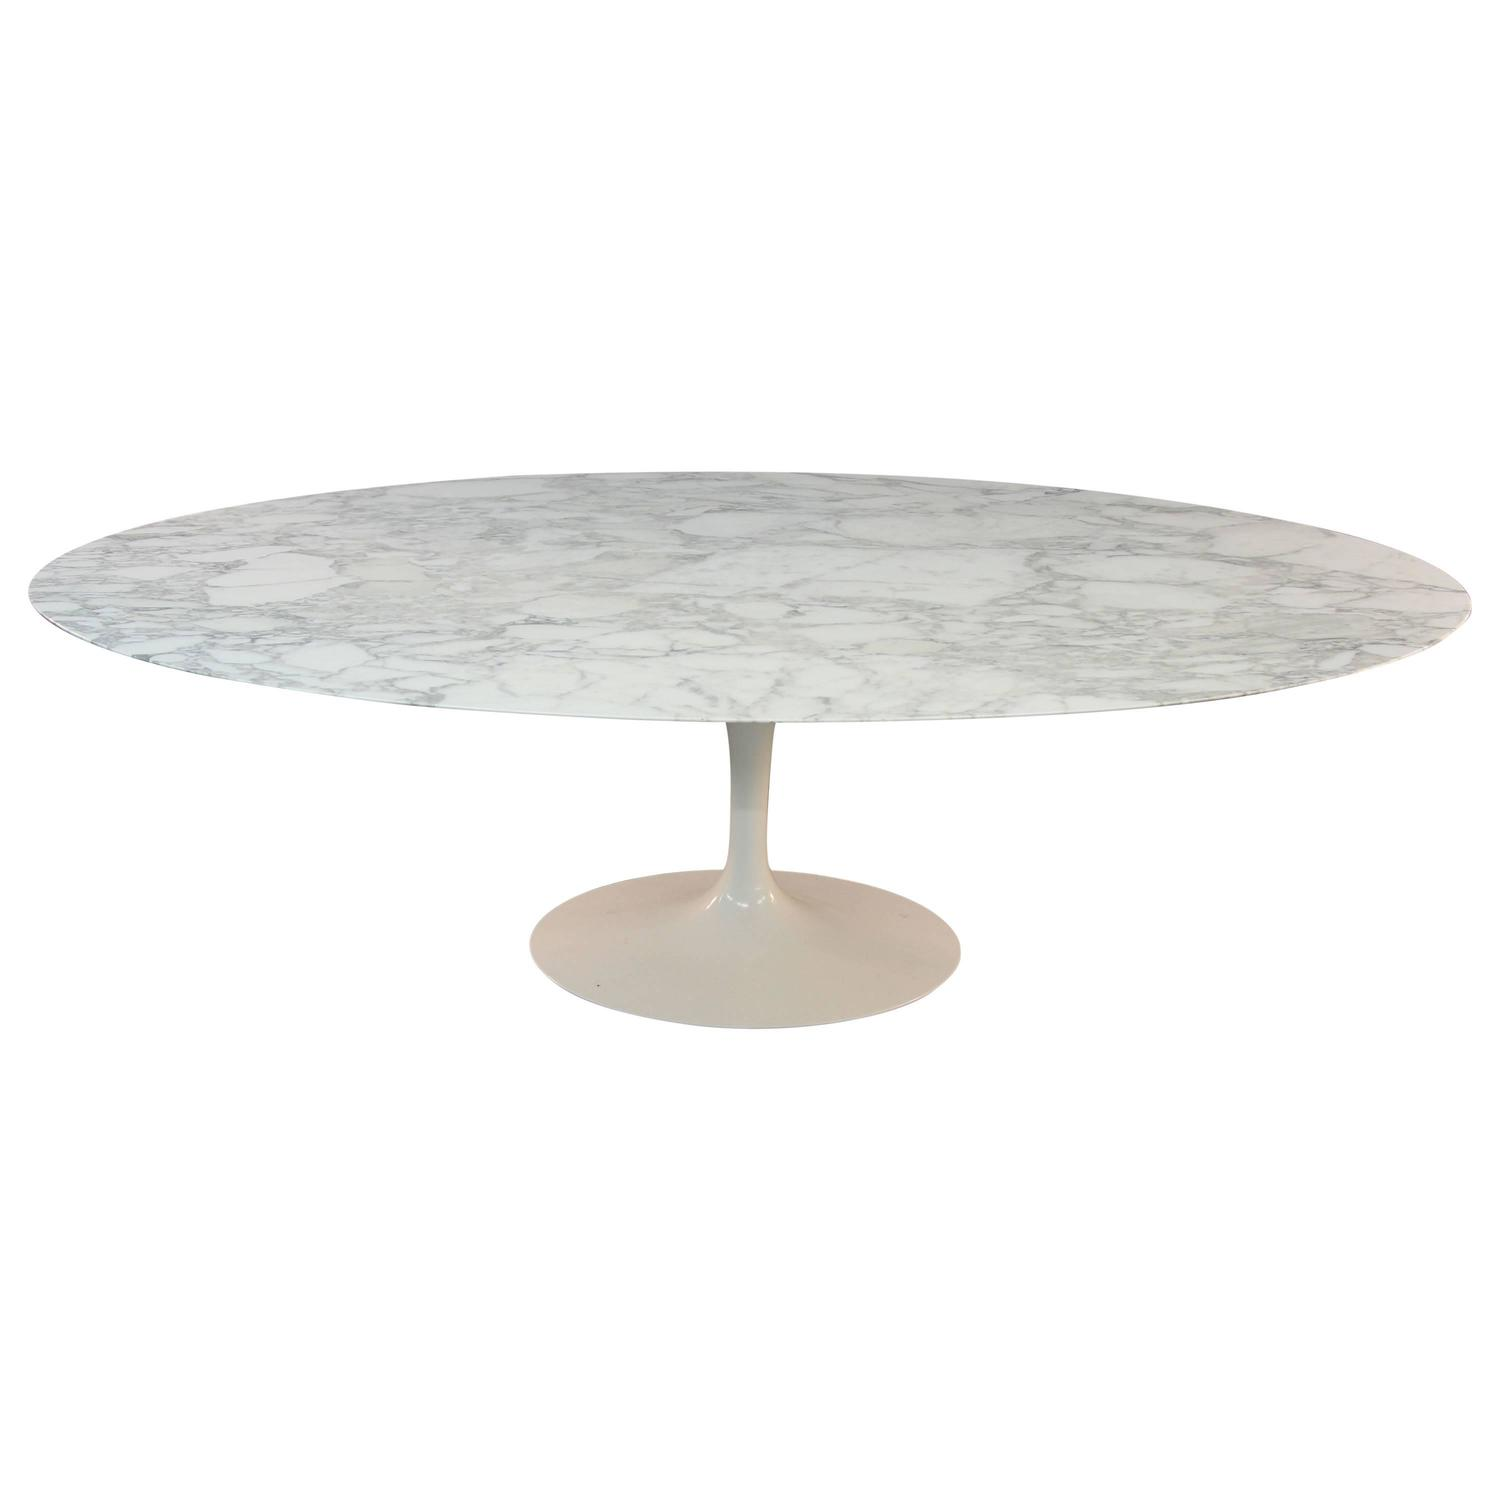 Eero saarinen marble top oval dining table for knoll at Oval dining table